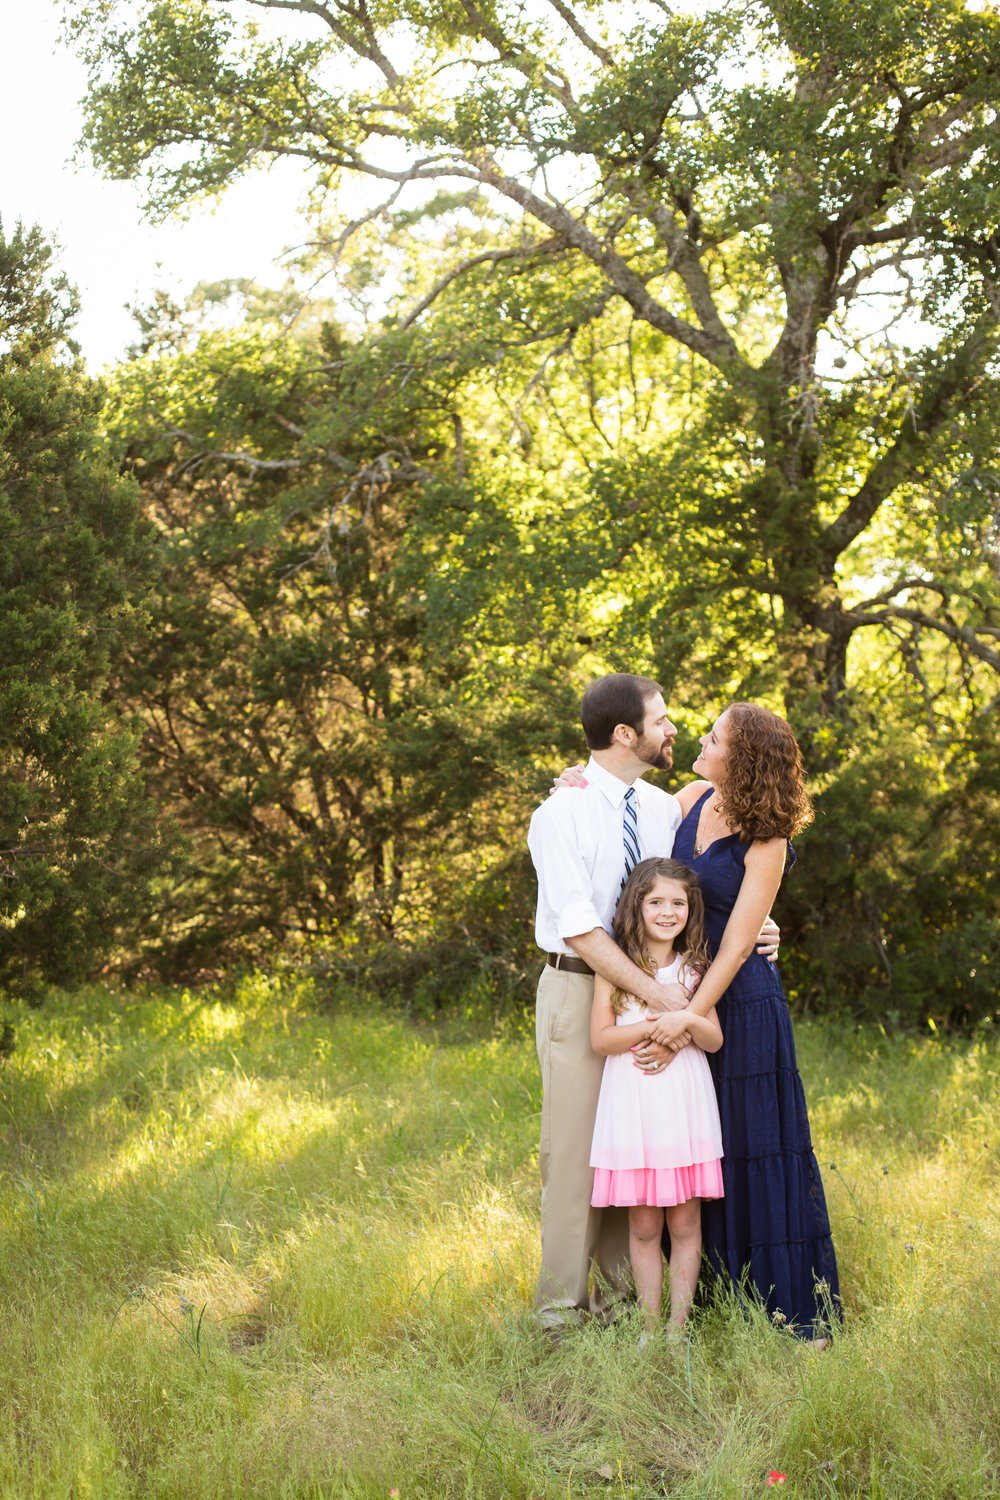 Marble_Falls_Horseshoe_Bay_Photographer_Turner_Family_04.jpg